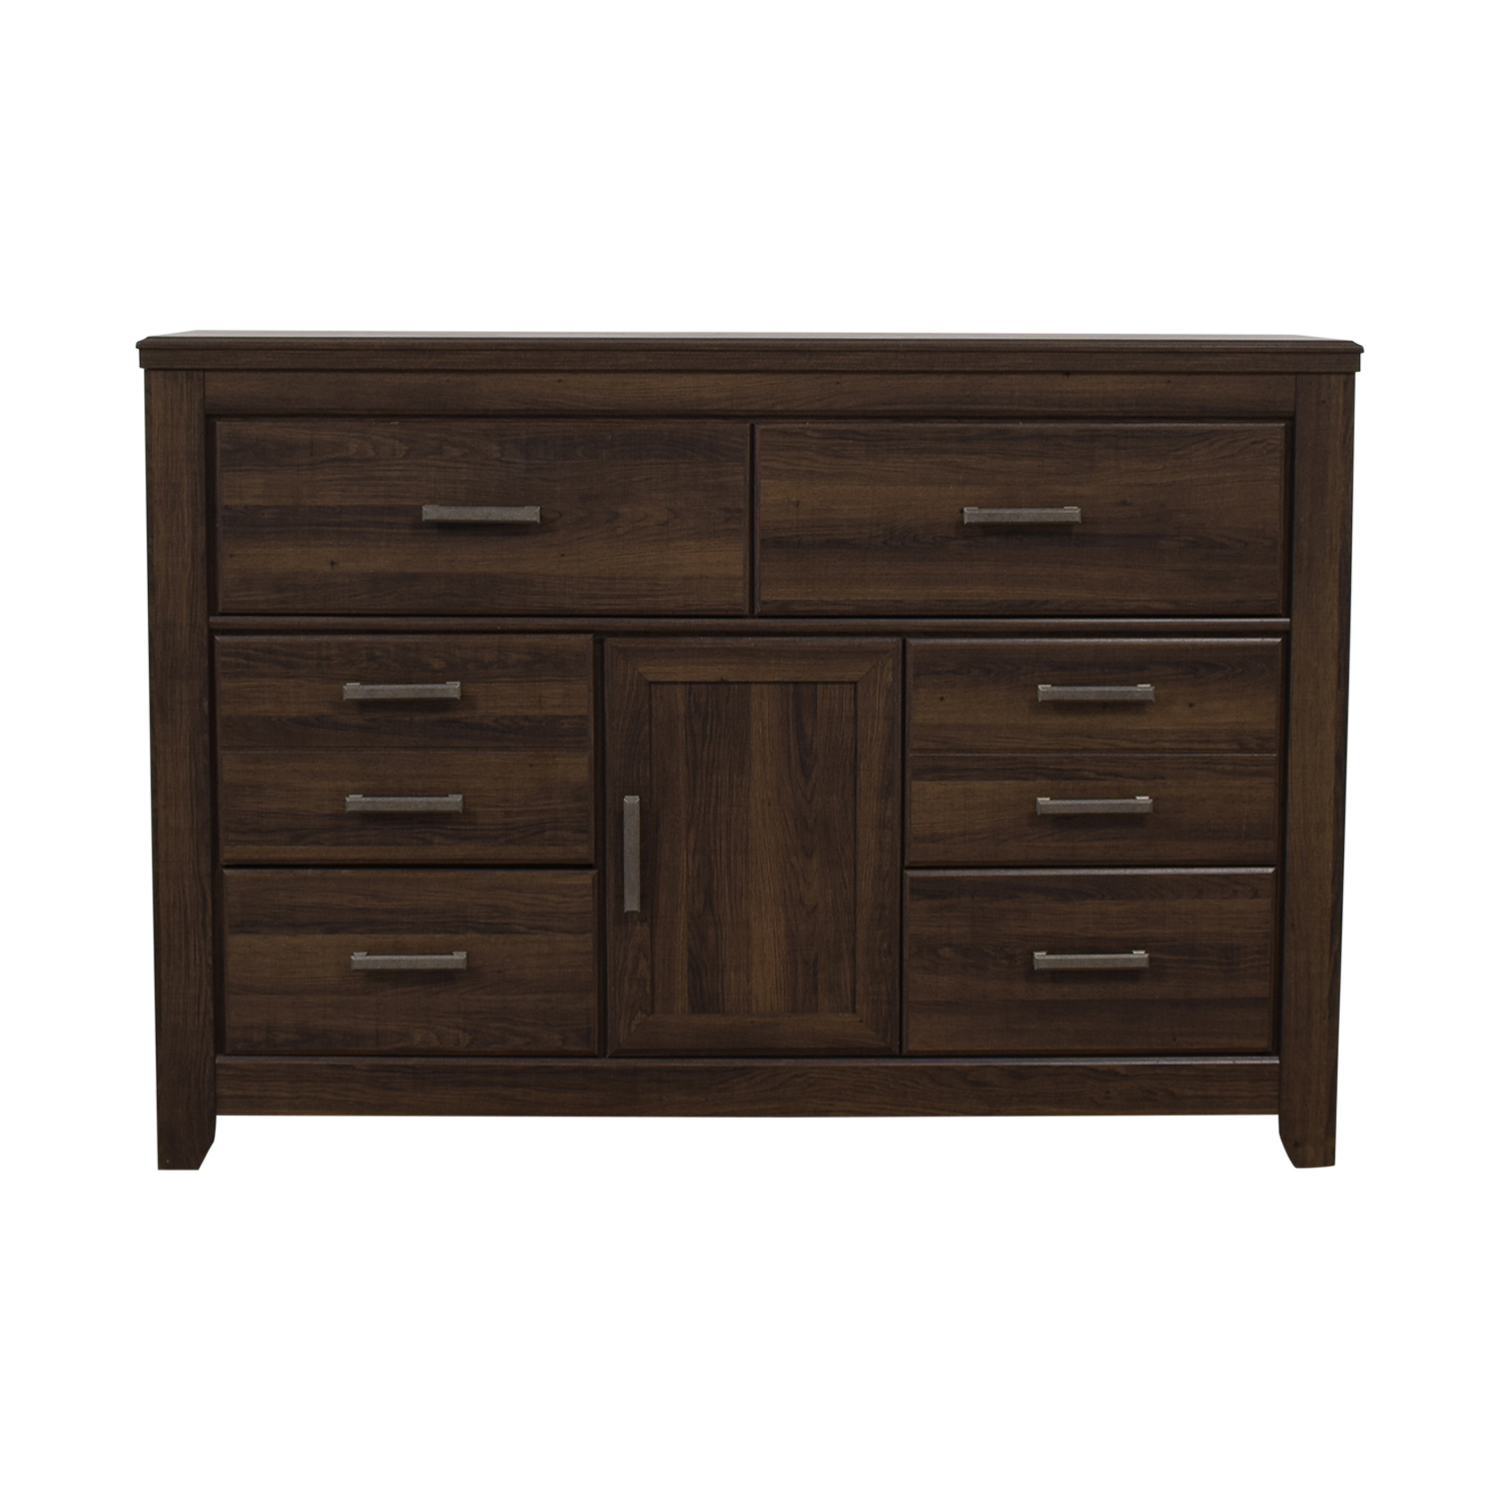 Ashley Furniture Ashley Furniture Six-Drawer Dresser Dressers